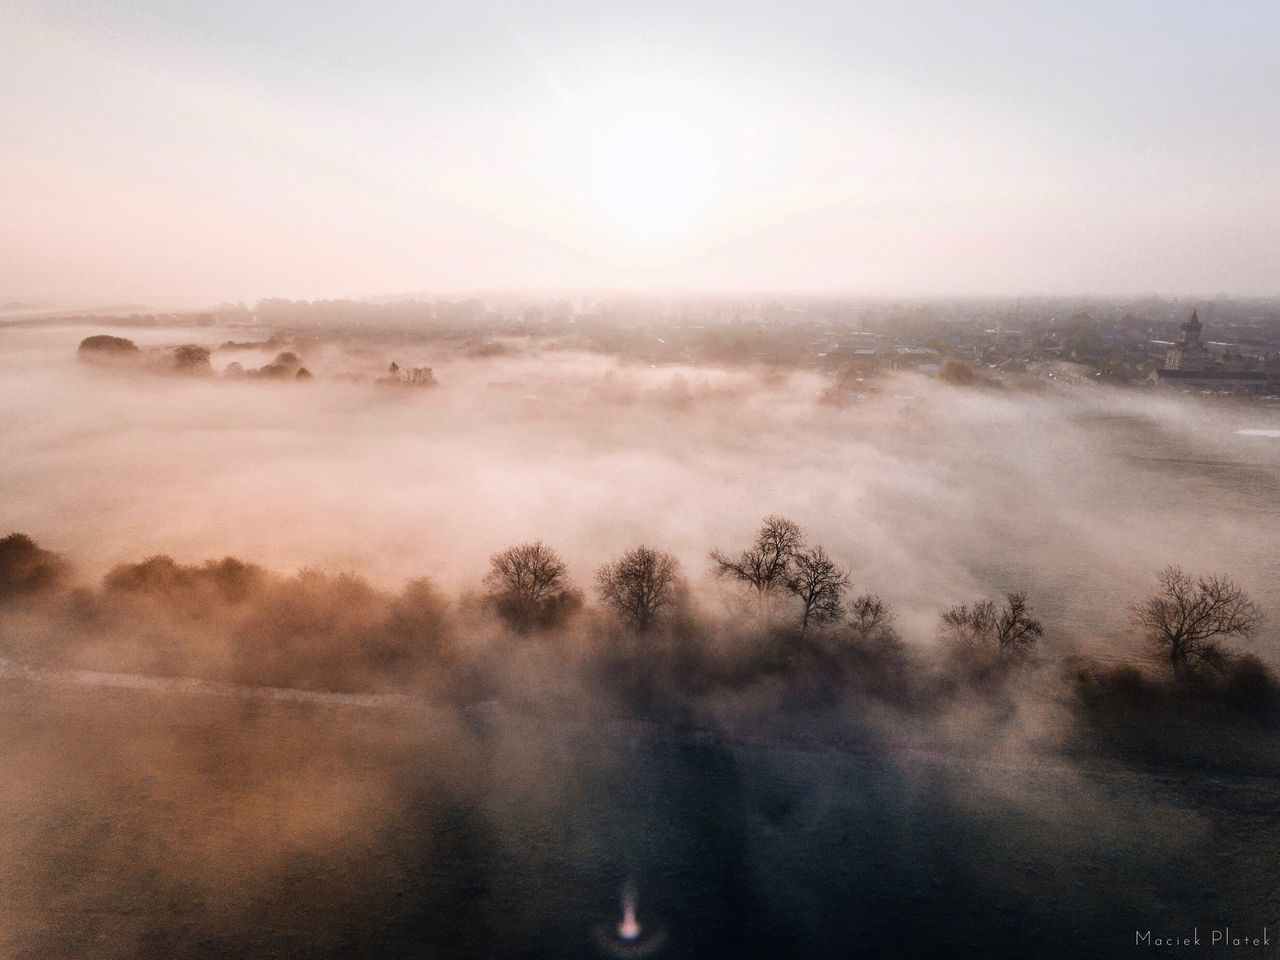 Good Morning Fog! Beauty In Nature Nature Mist Scenics Tranquil Scene Tranquility Hazy  Water Fog Idyllic No People Outdoors Sky Tree Day Landscape